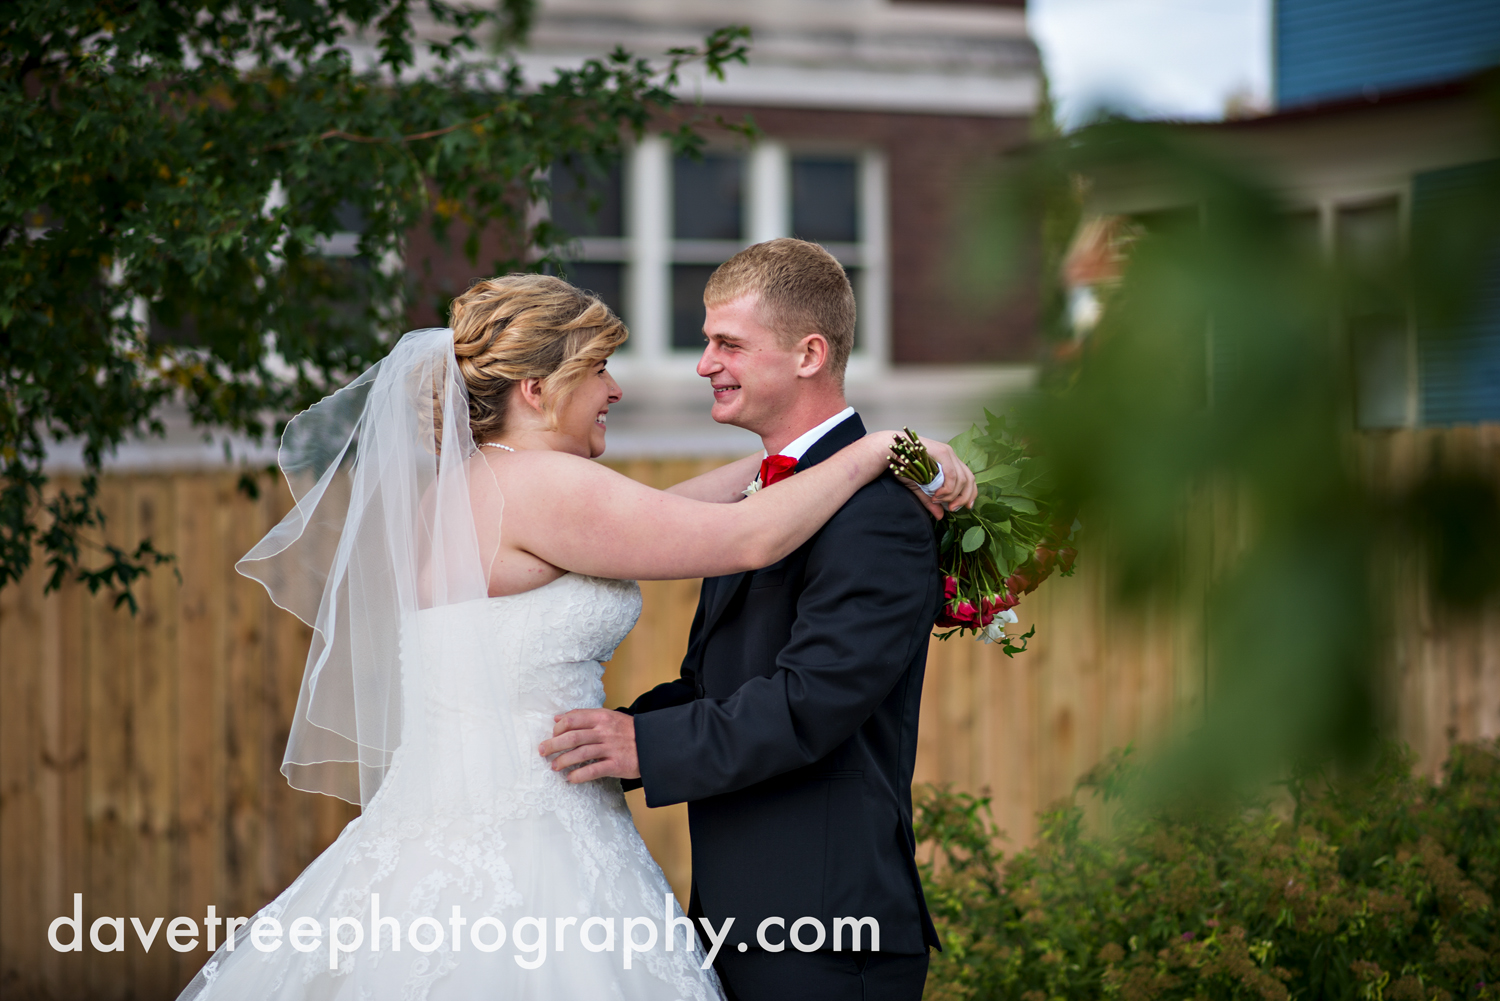 holland_wedding_photographer_74.jpg